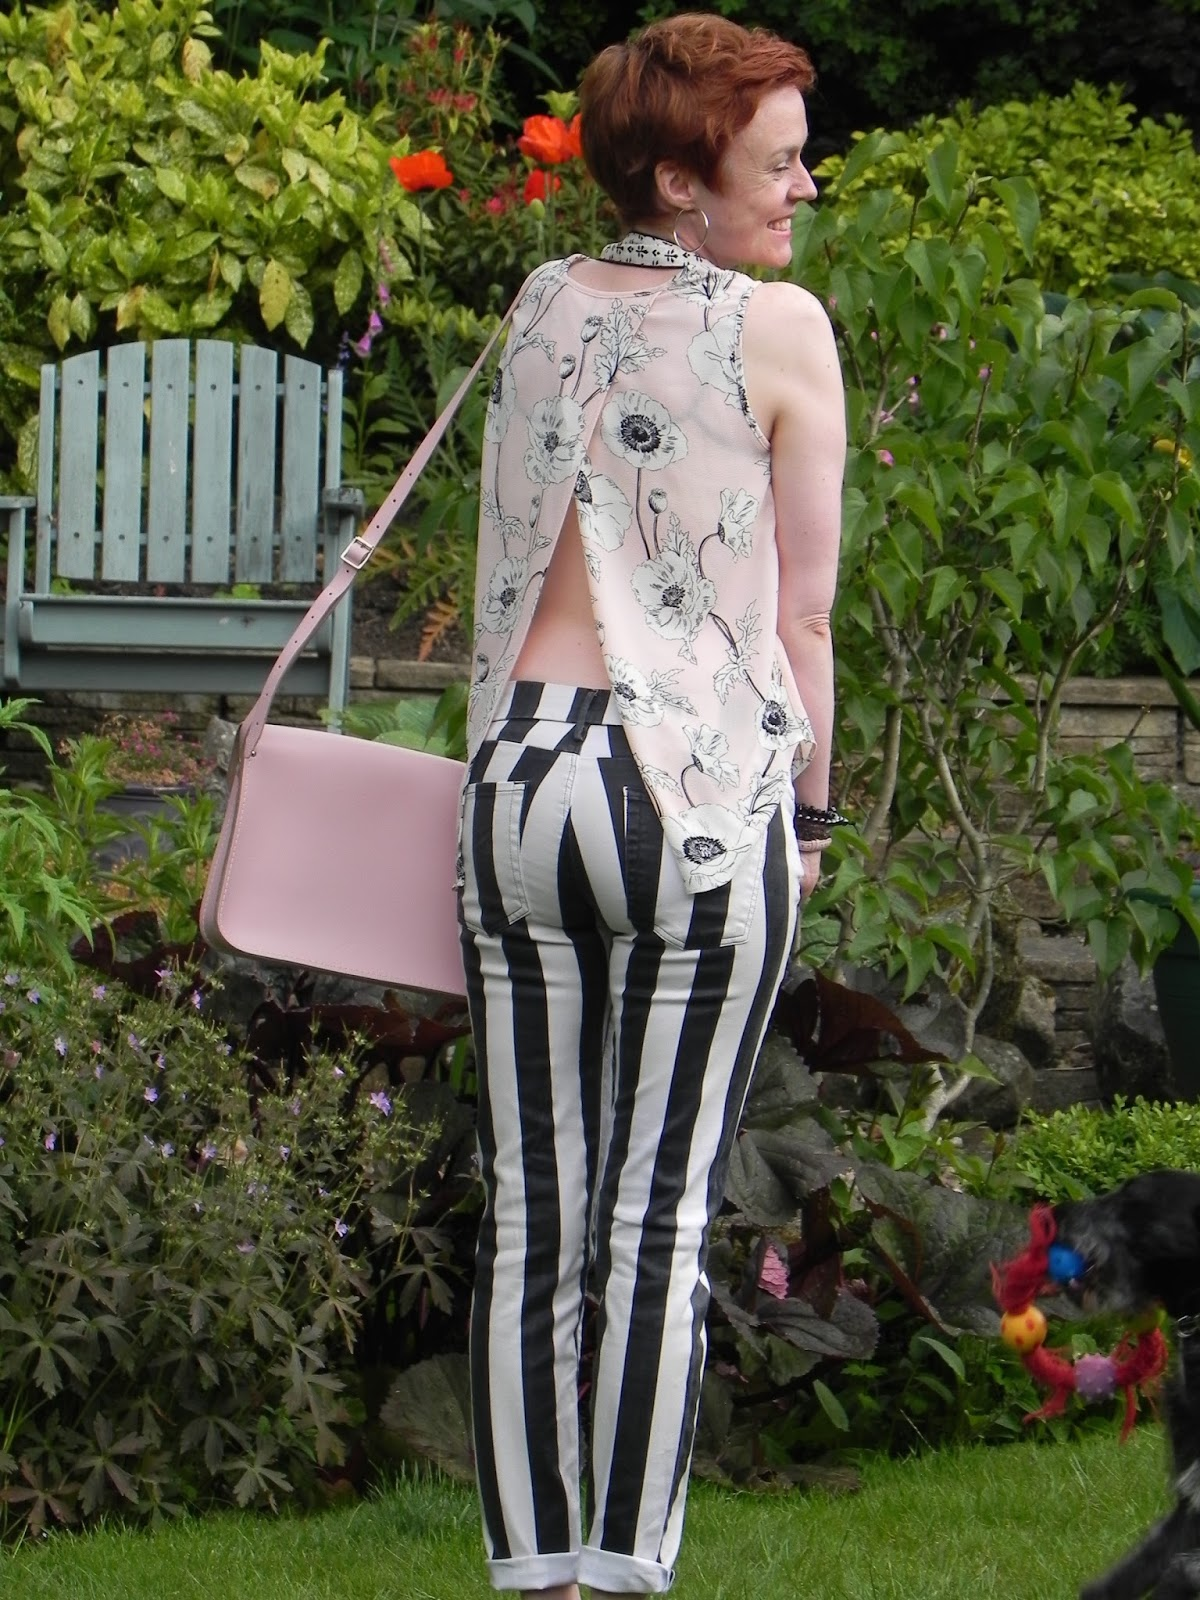 Black and white, striped jeans,pink floral top